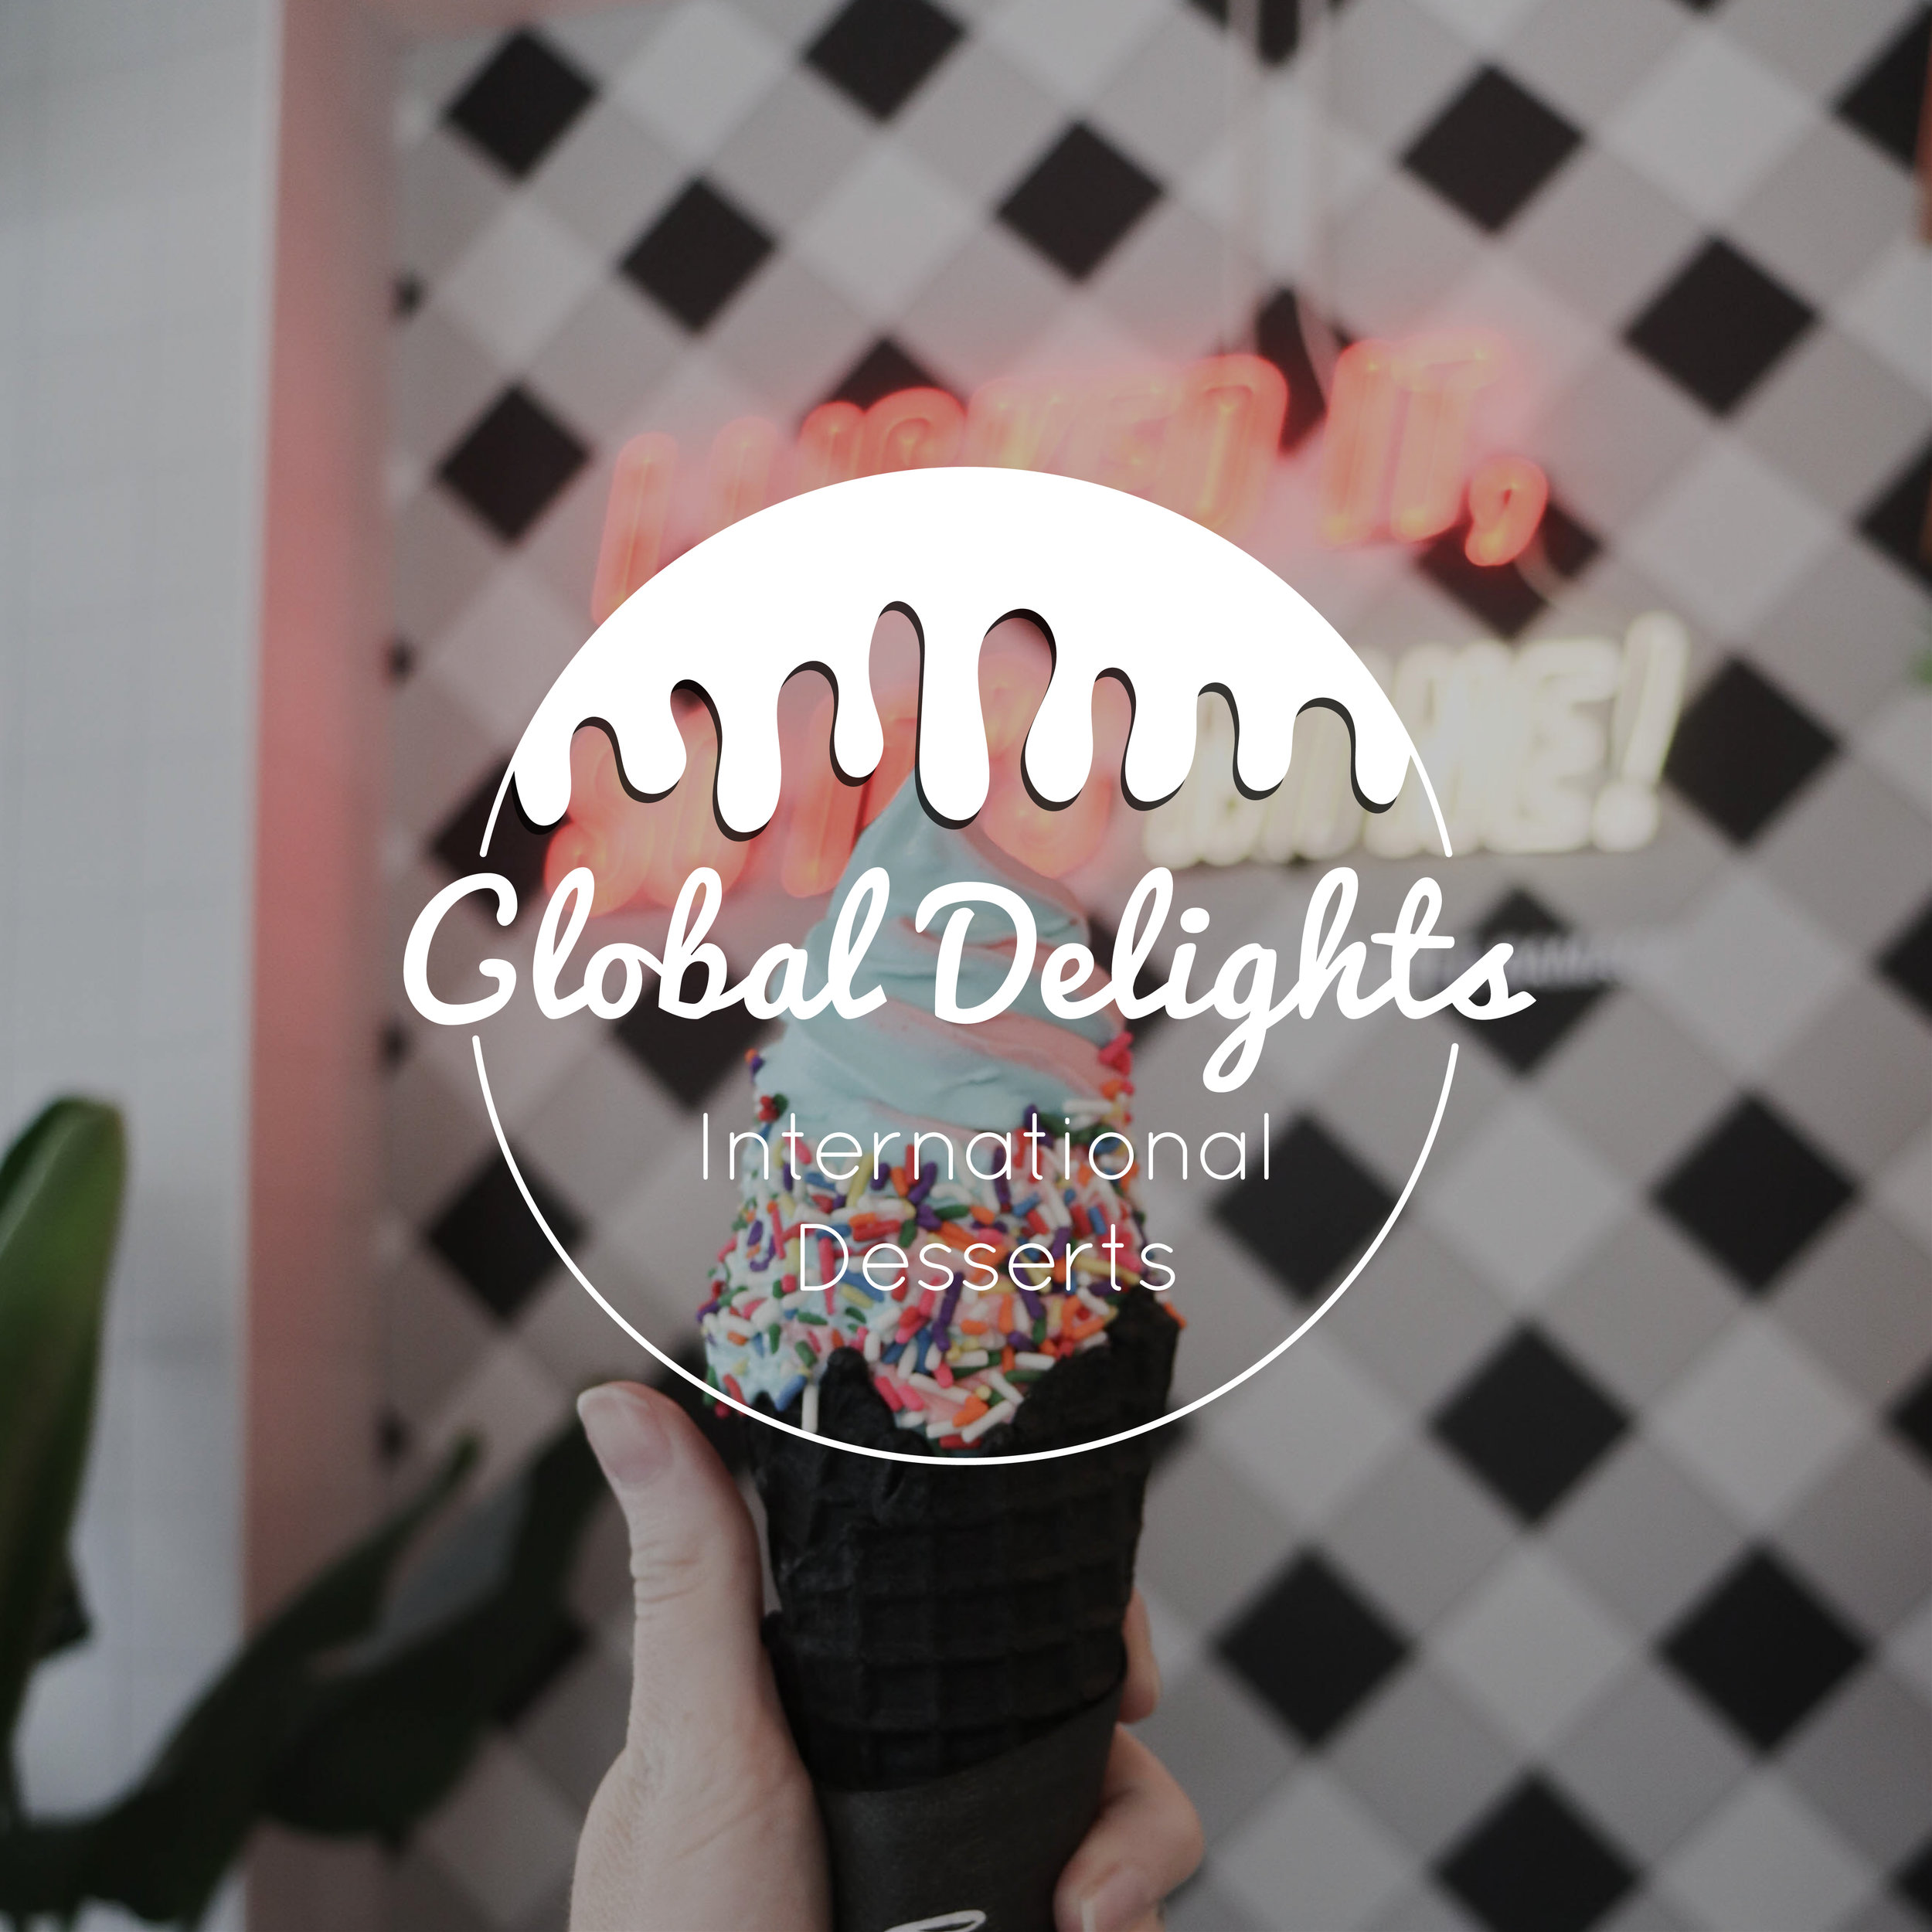 global delights logo photo-04.jpg